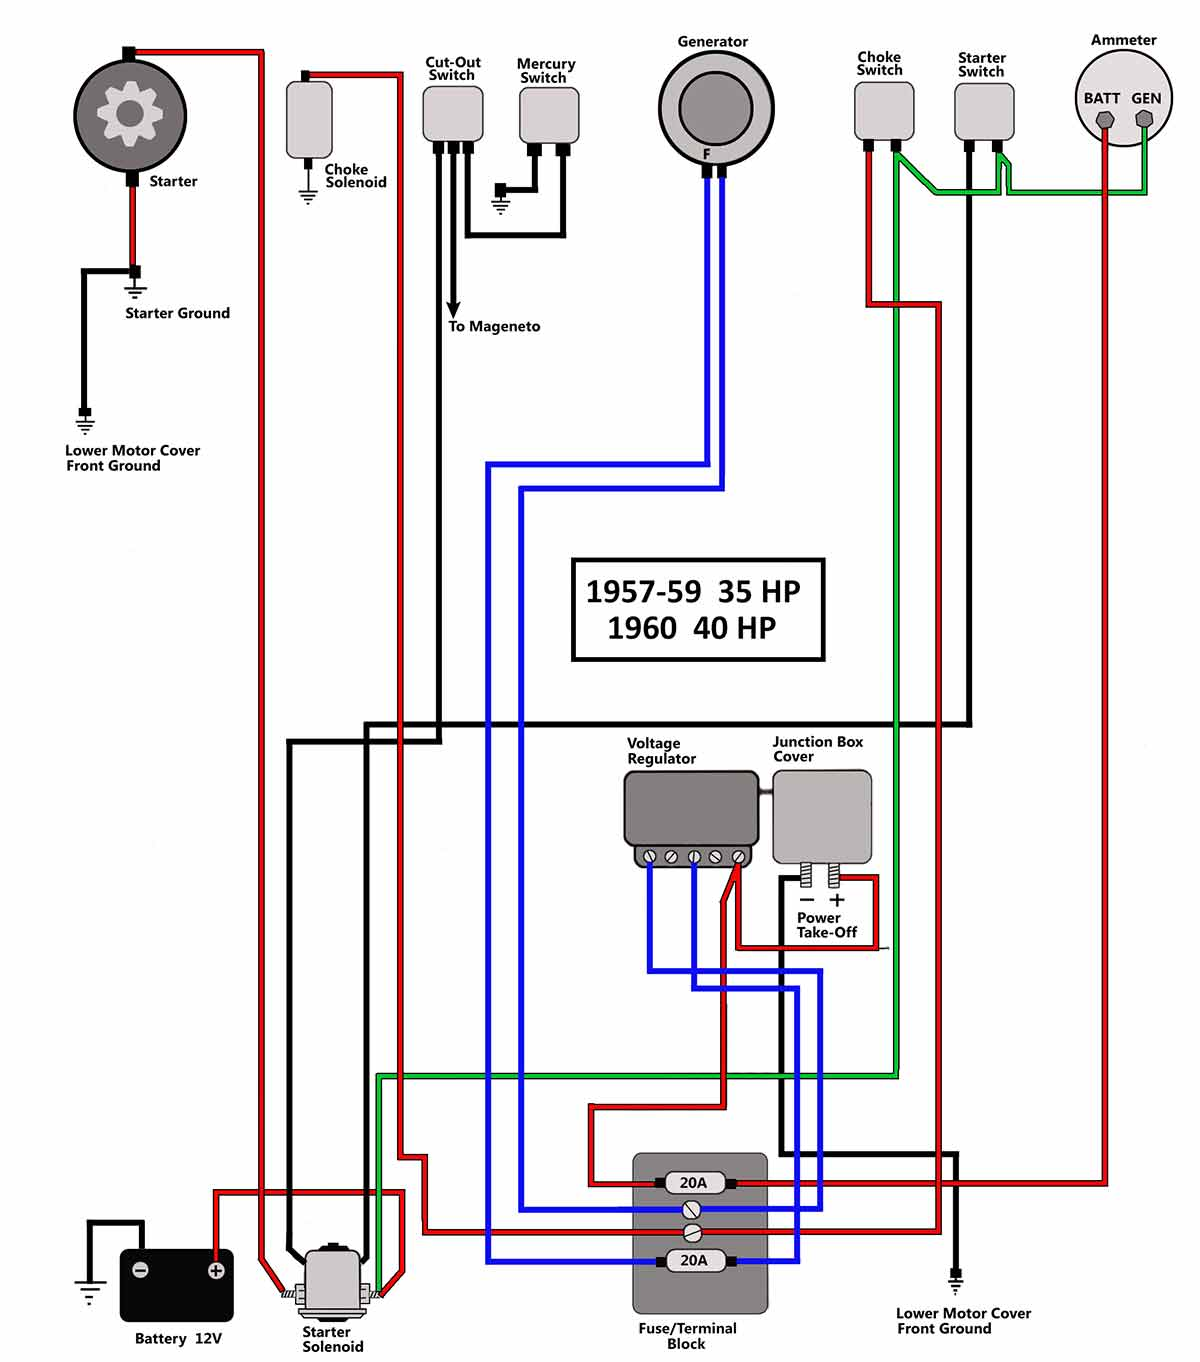 1957 60_35 40 help with wiring ignition and connecting battery to 1973 40hp 1992 johnson 40 hp outboard wiring diagram at soozxer.org